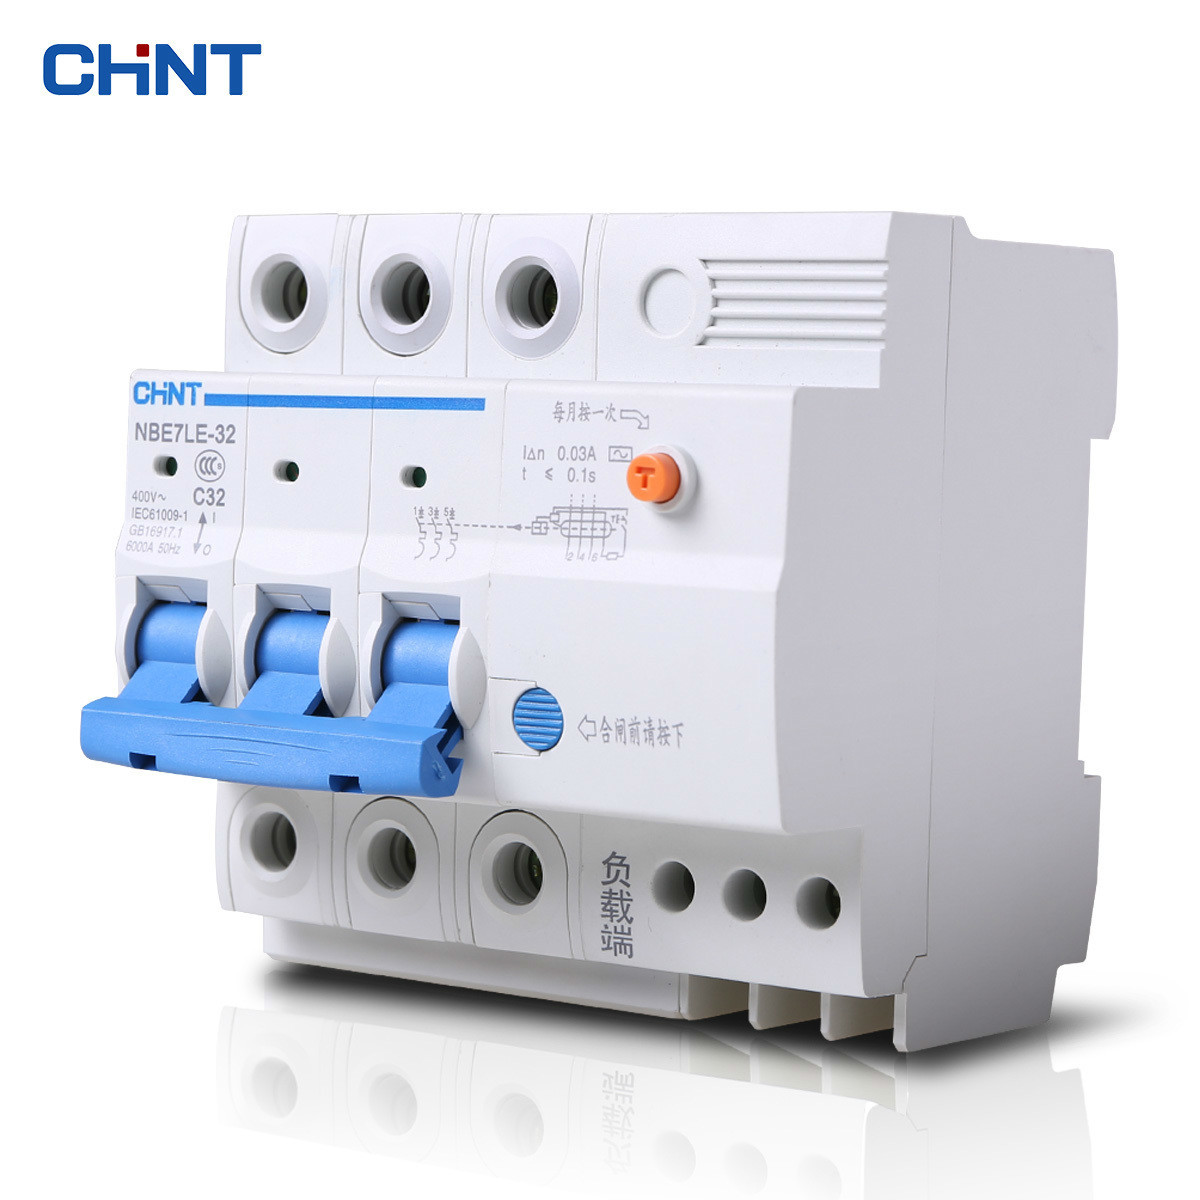 CHNT CHINT Leakage Protector NBE7LE 3P 16A 20A 25A 32A 40A 63A With Leakage Protector Small Air Switch chnt chint leakage protector nbe7le 3p n 16a 20a 25a 32a 40a 63a small circuit breaker air switch